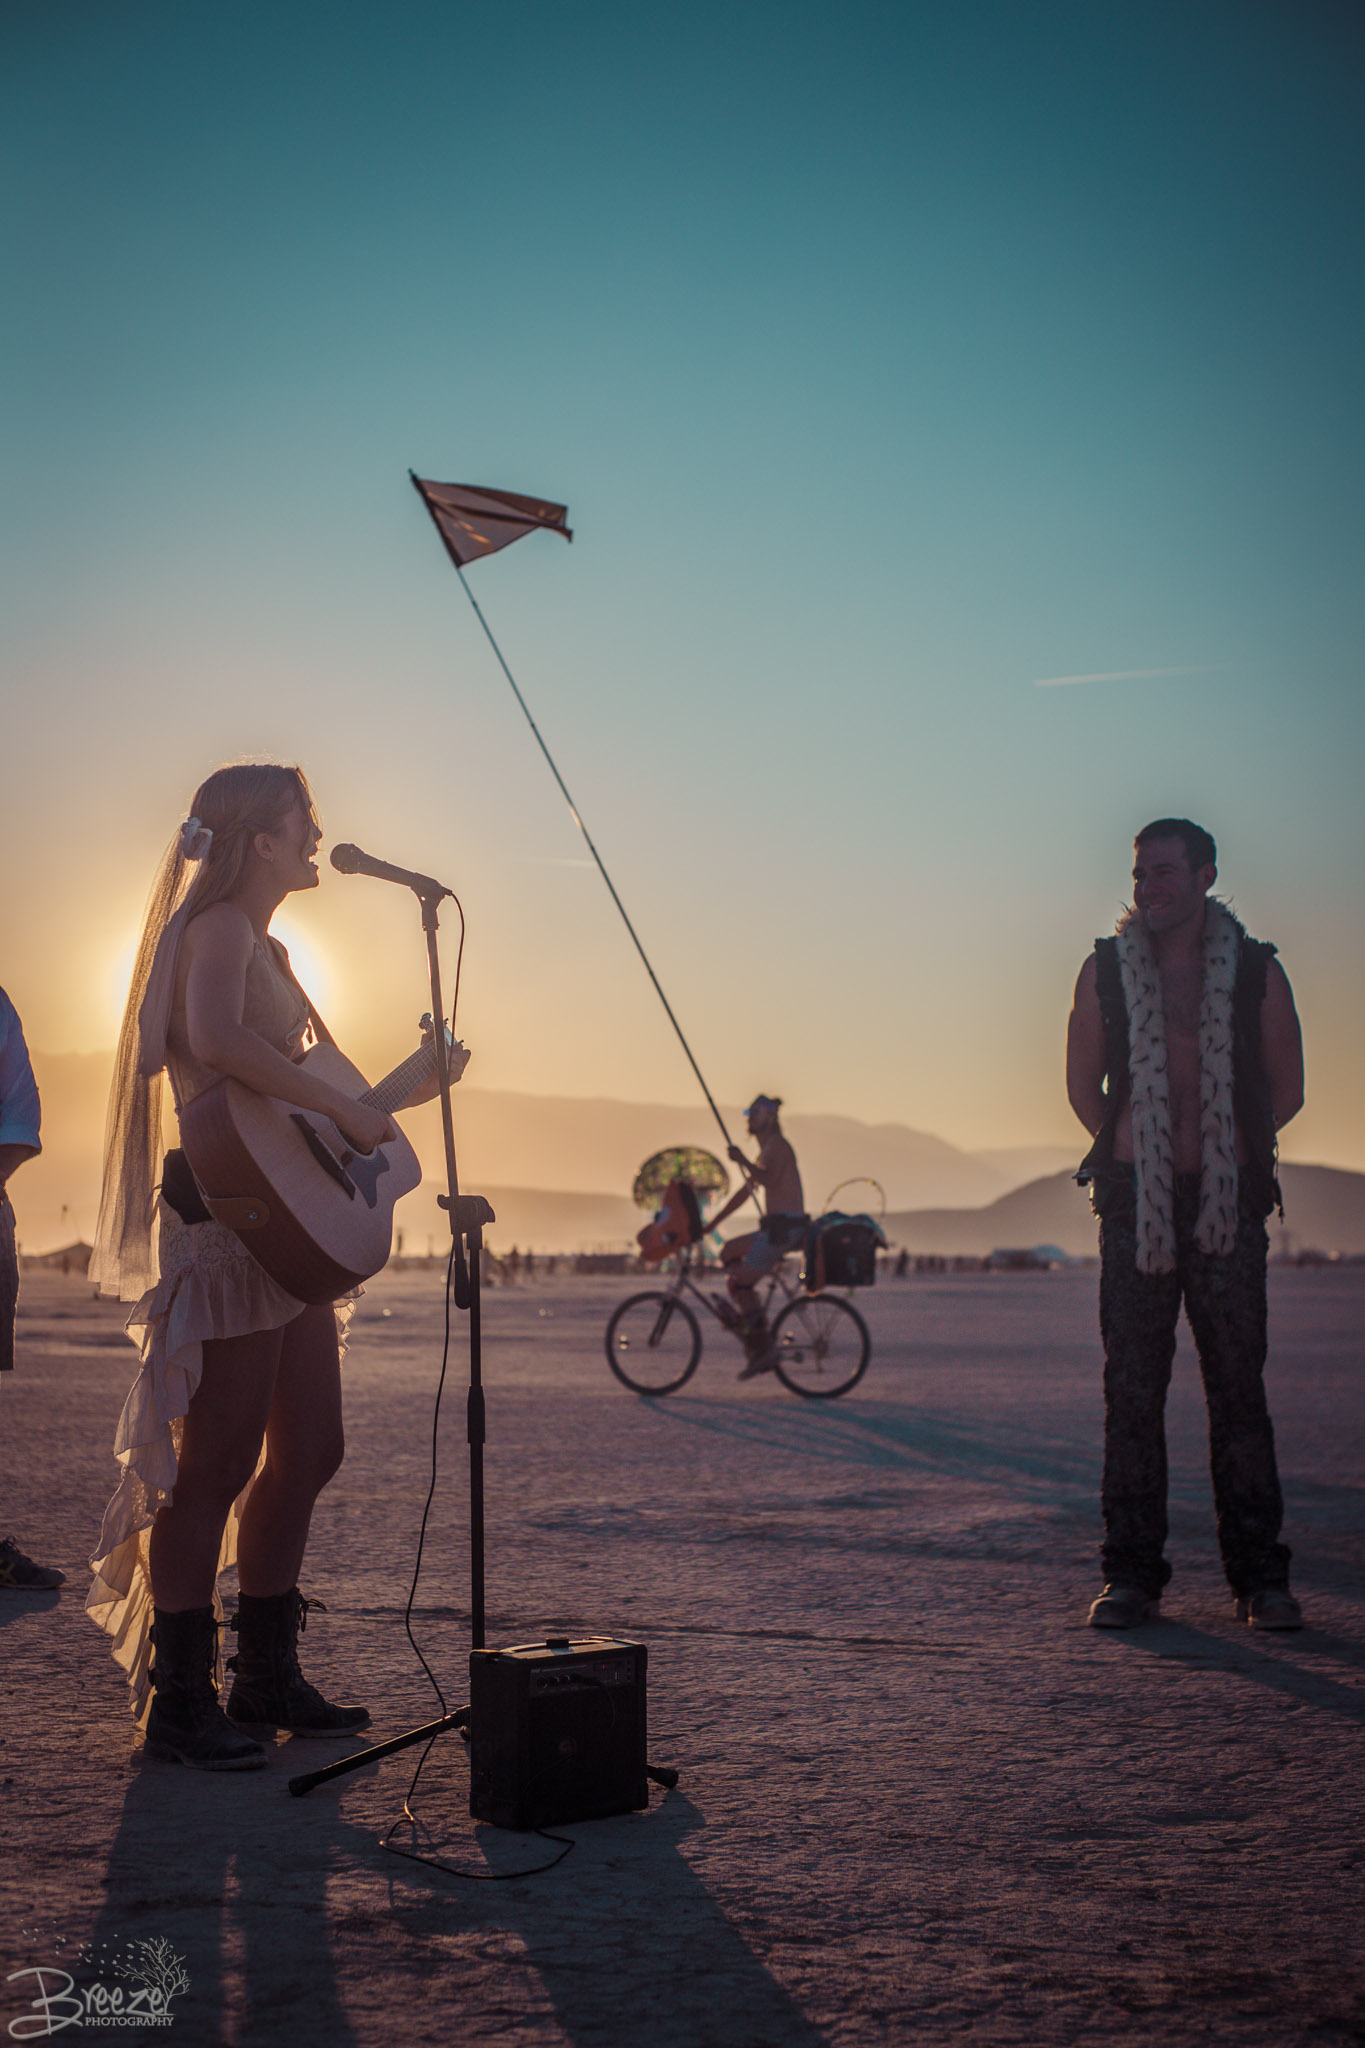 Brie'Ana Breeze Photography & Media - Burning Man 2018-3524.jpg